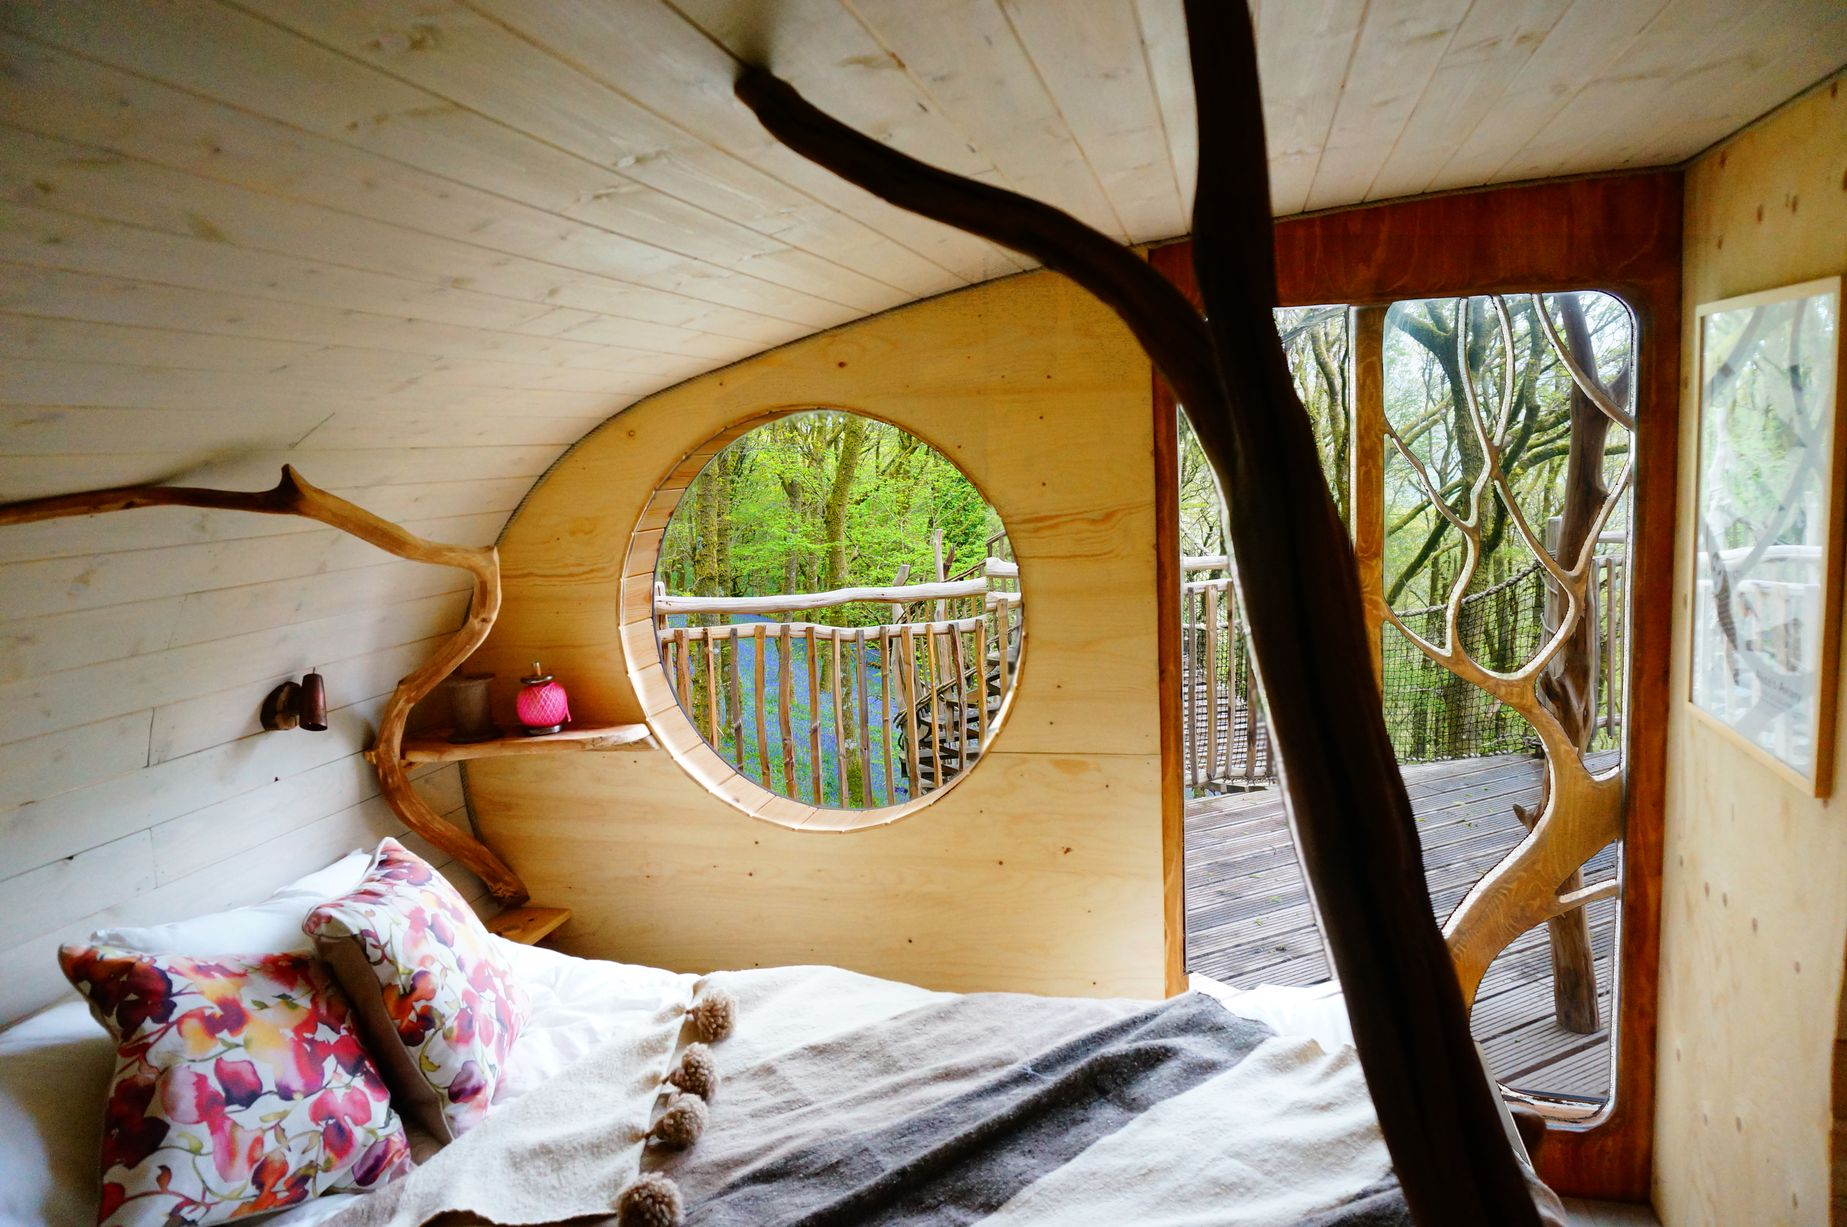 Interior of Welsh Treehouse